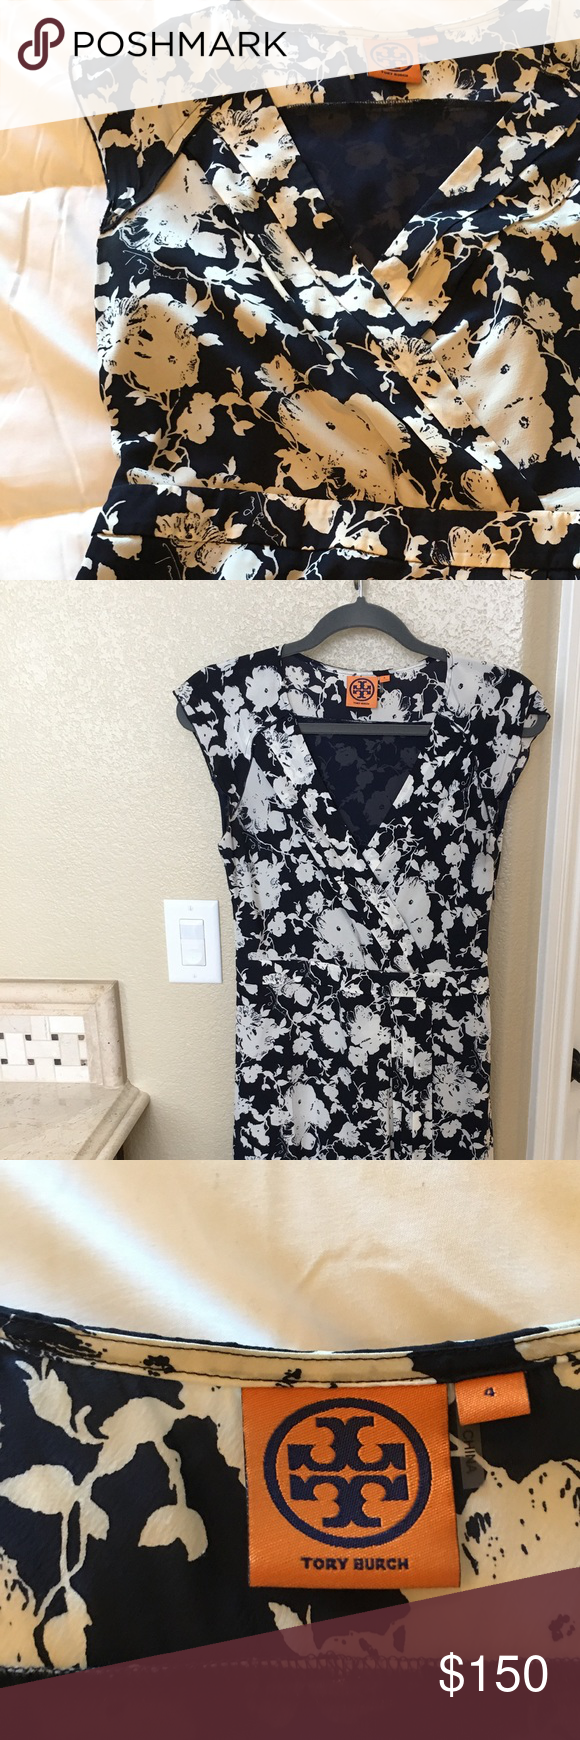 Tory Burch dress ( size 4) Tory Burch dress for summer, great for dress up or down. Dresses Midi